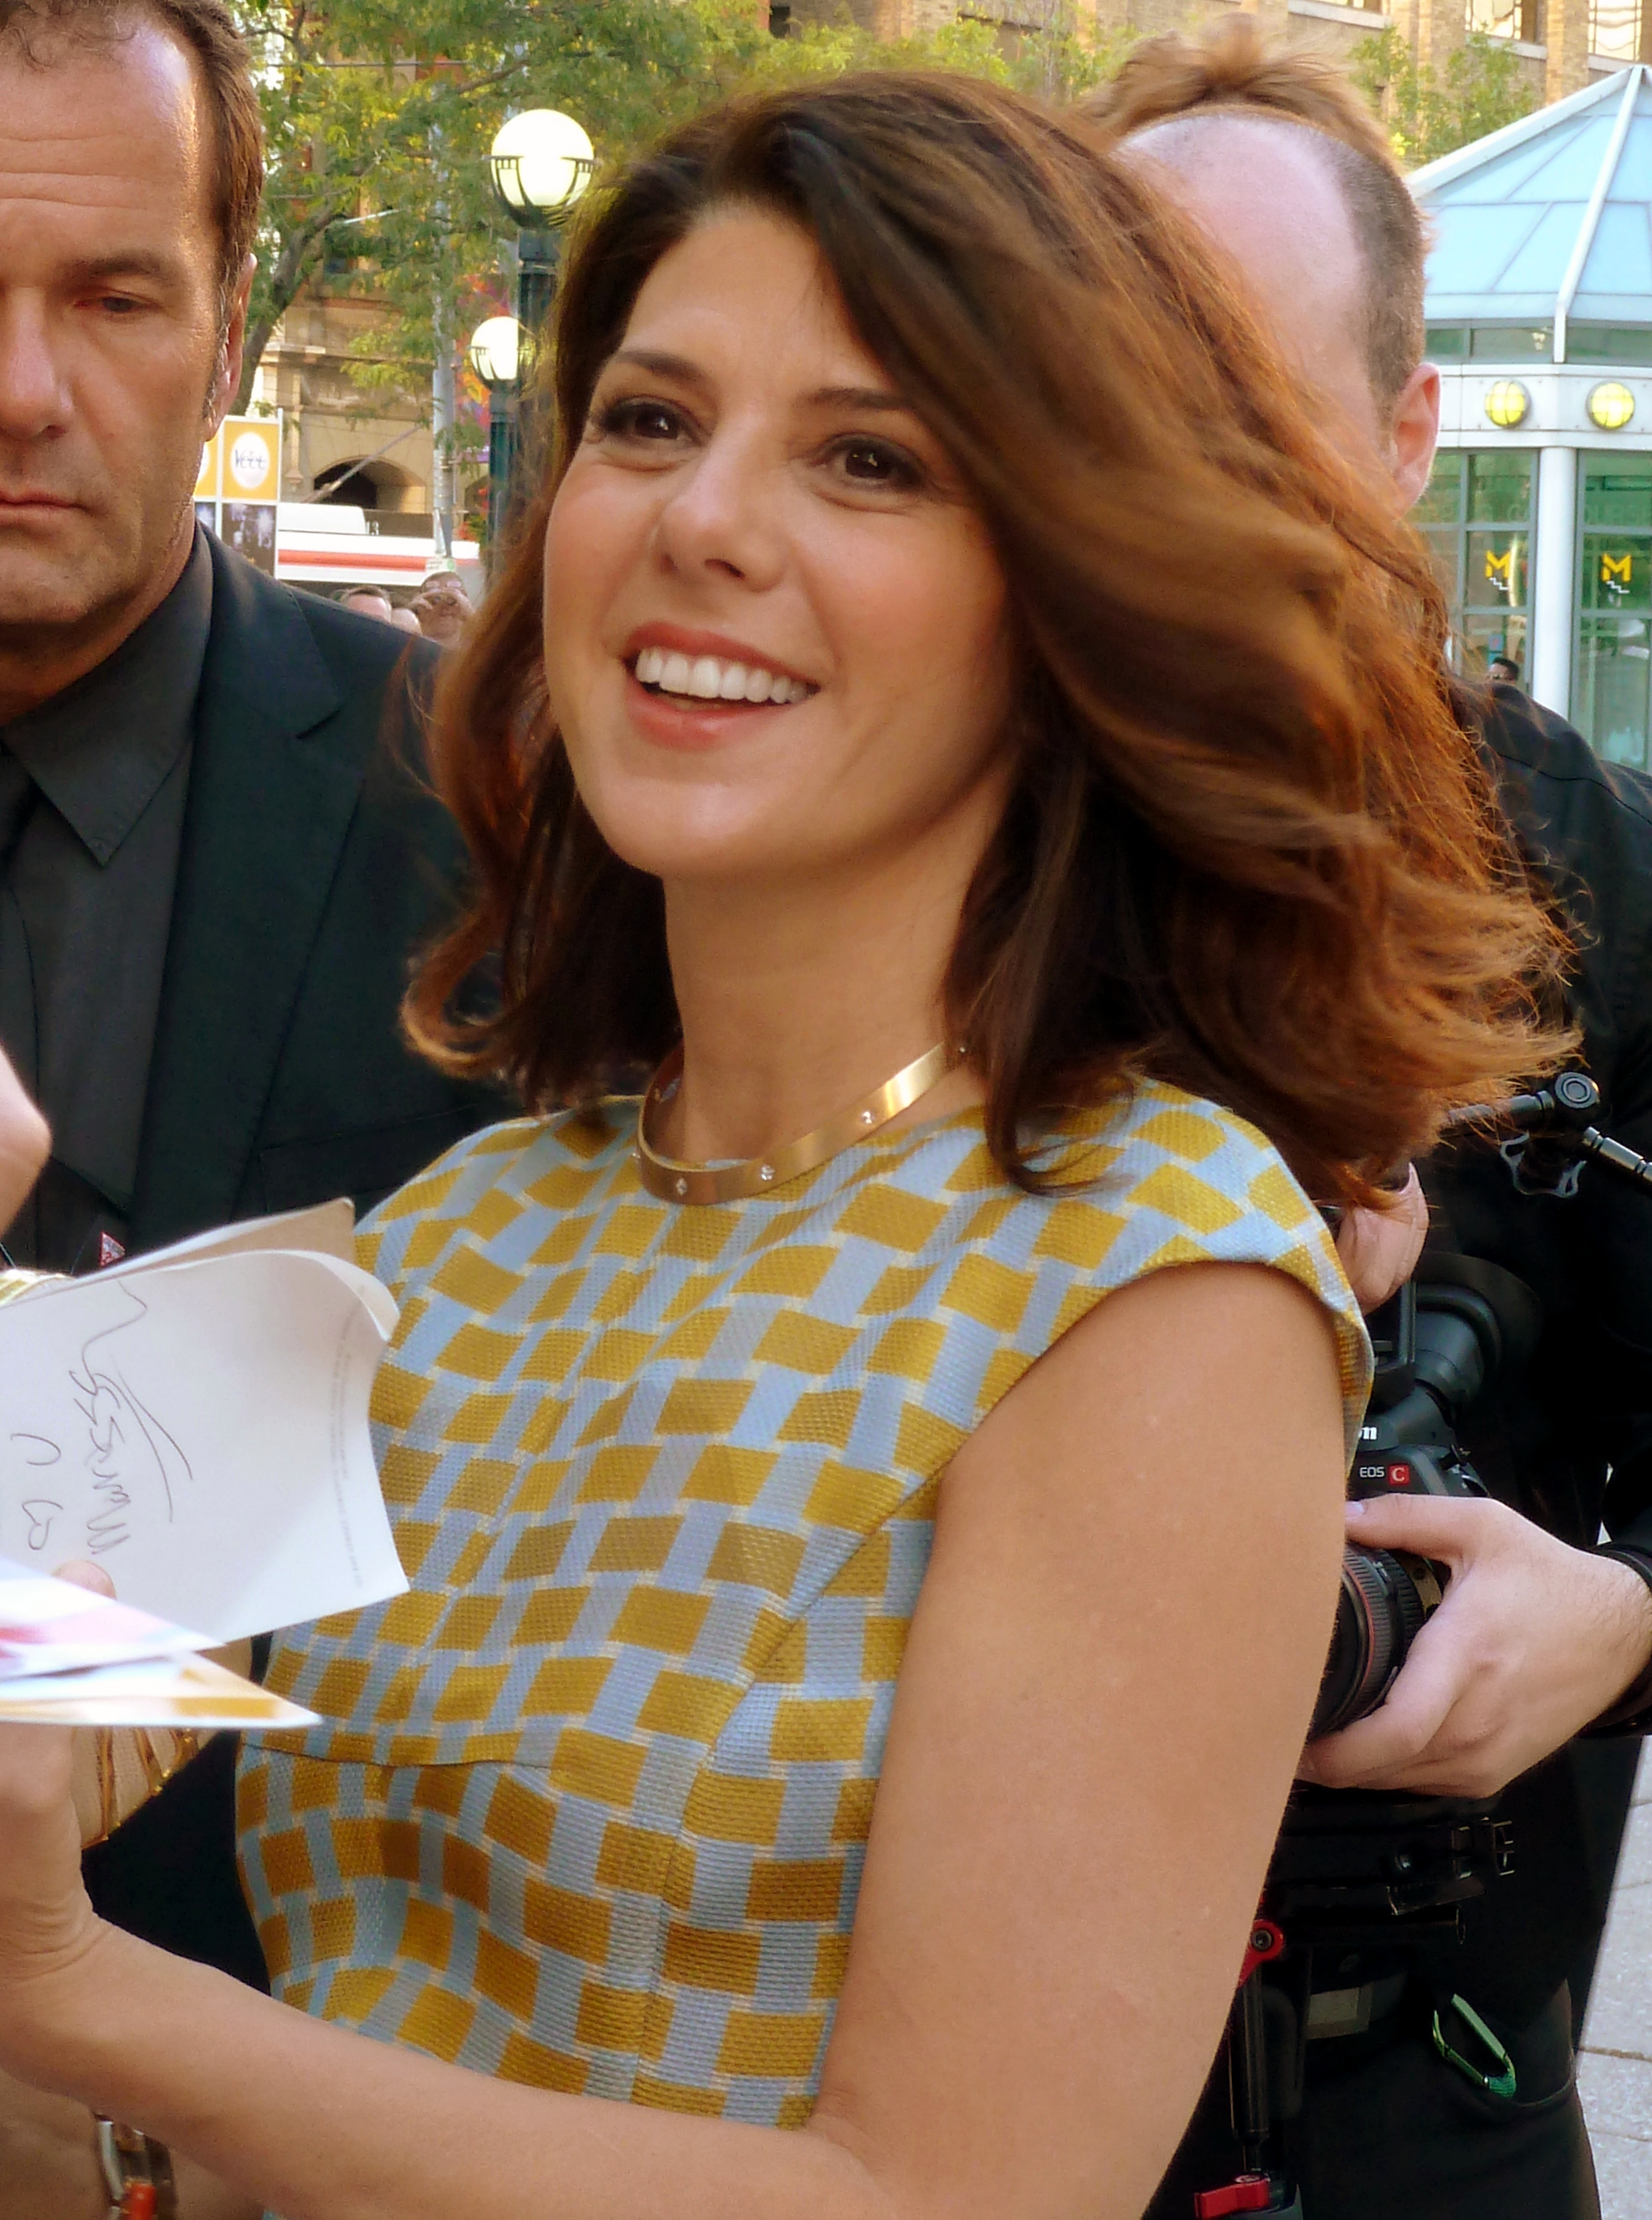 https://upload.wikimedia.org/wikipedia/commons/c/c9/Marisa_Tomei_TIFF_2012.jpg